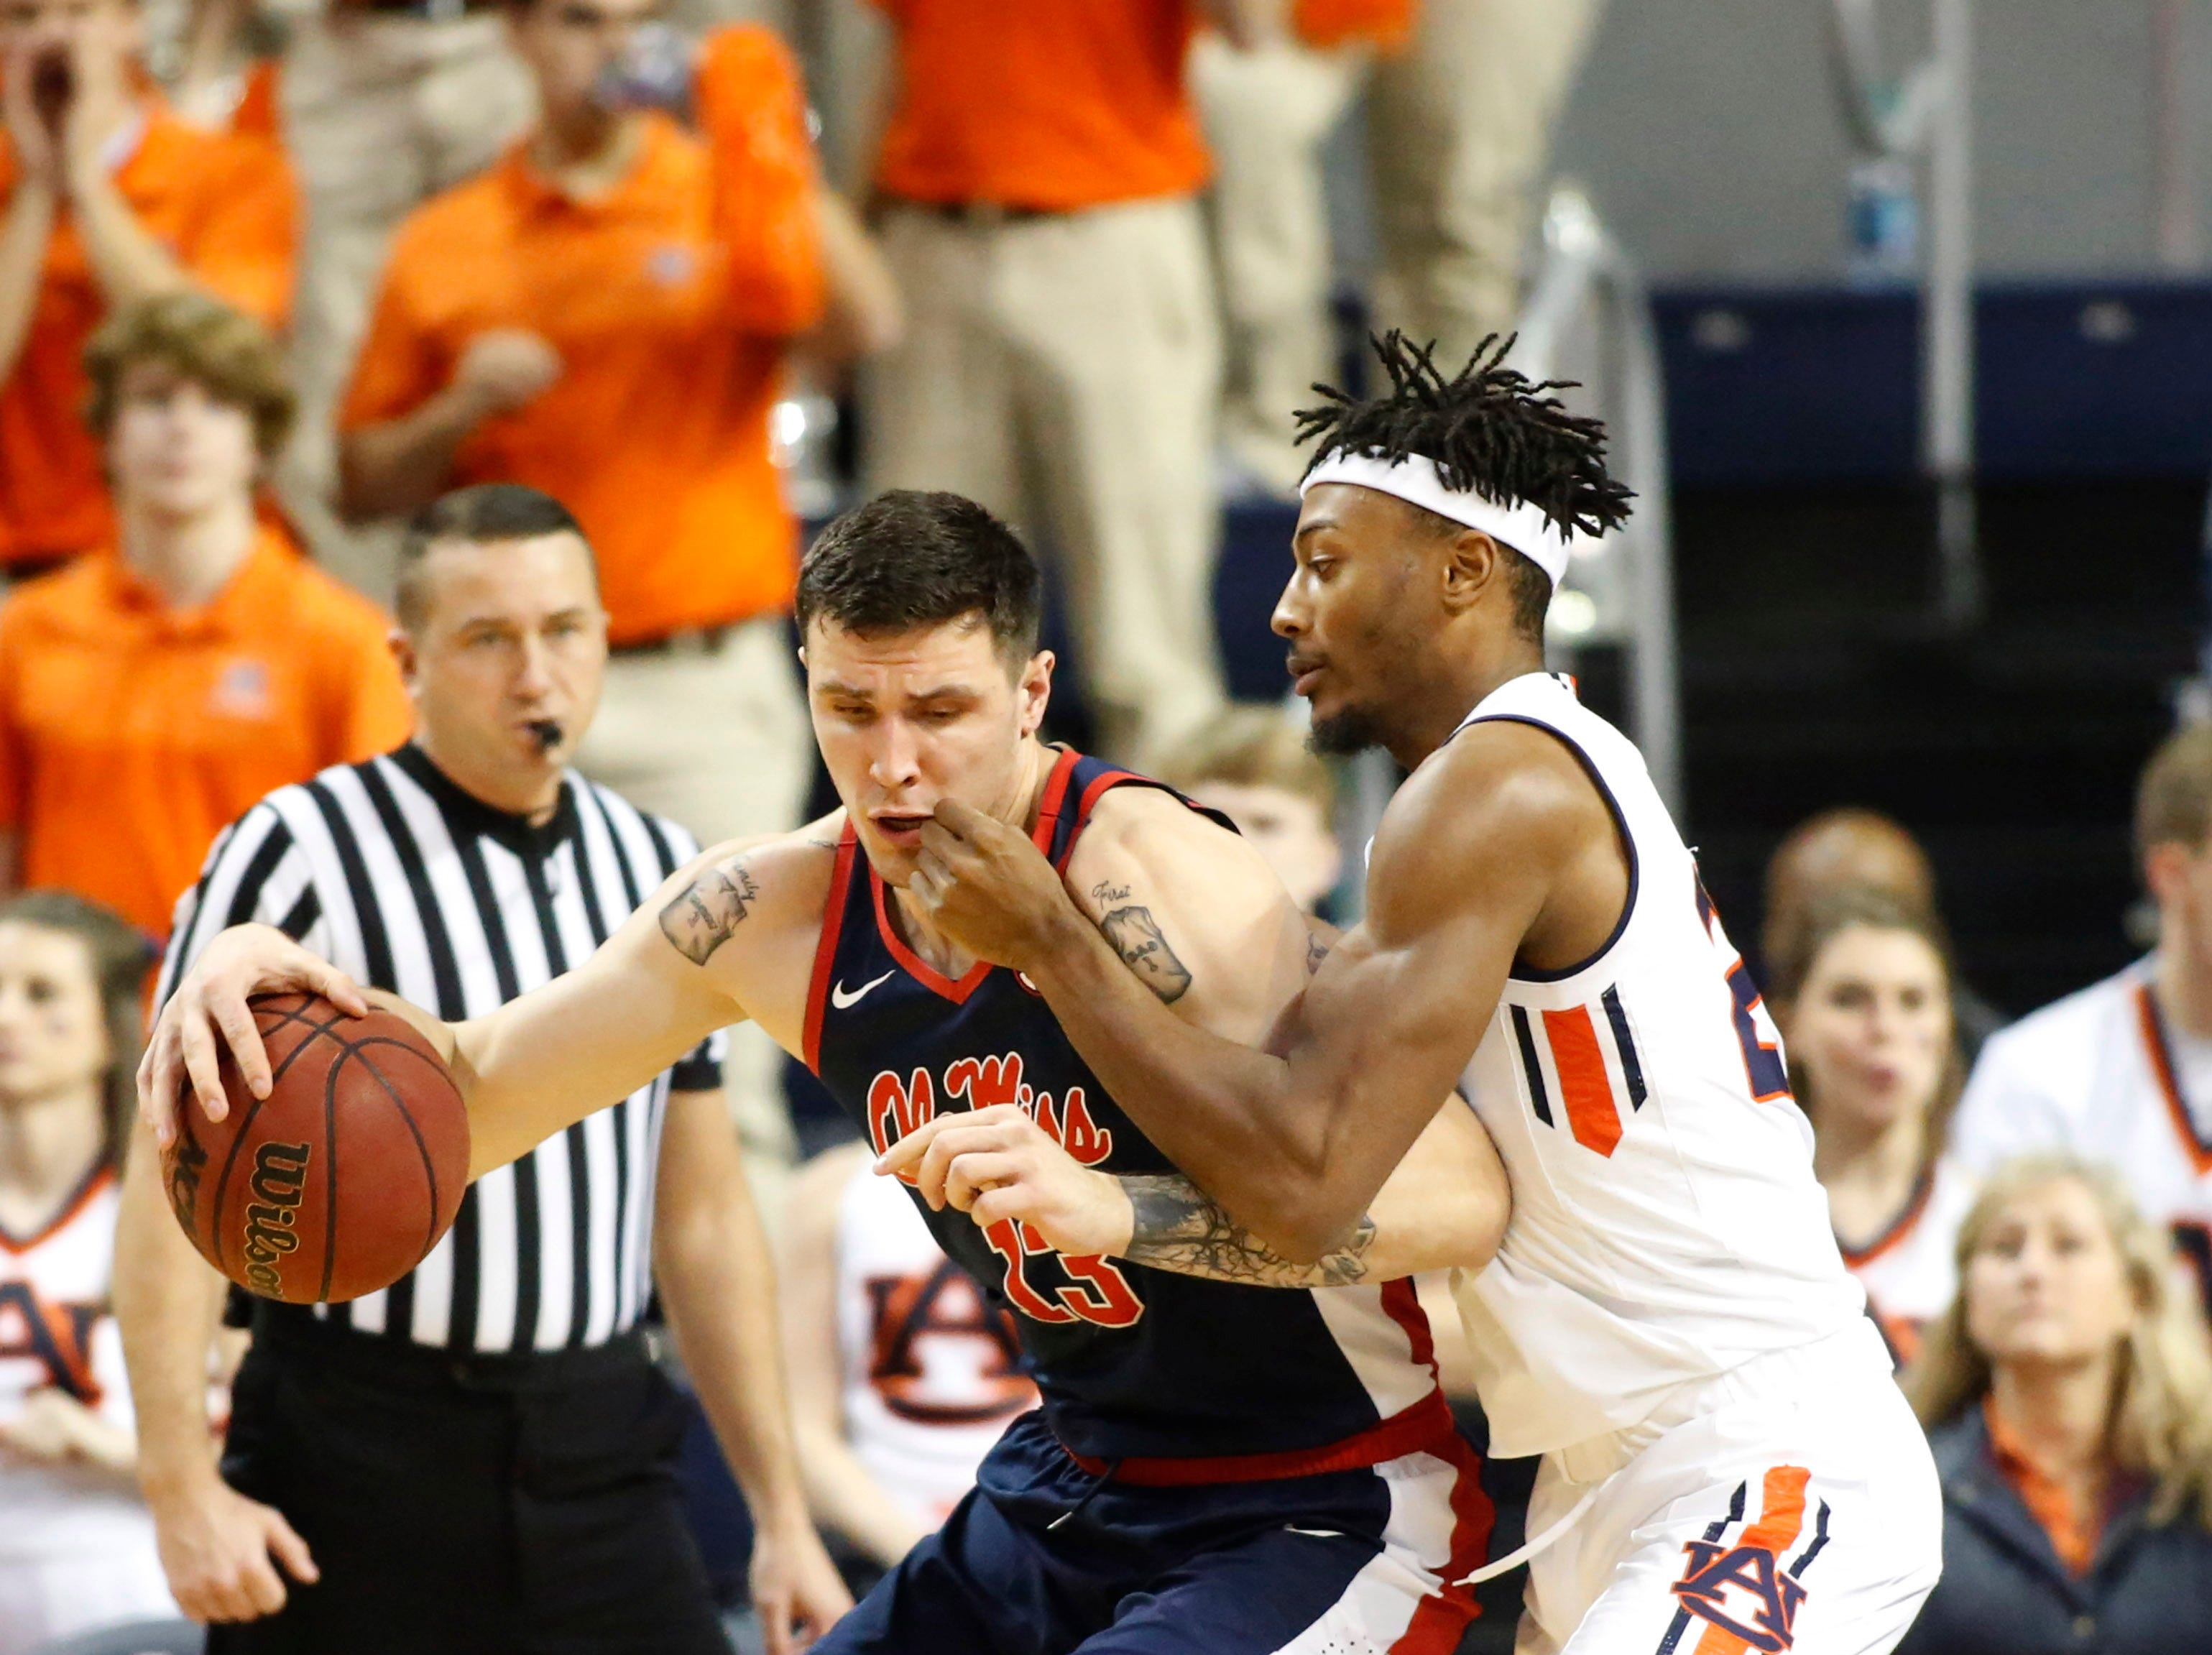 Feb 13, 2019; Auburn, AL, USA;  Ole Miss Rebels center Dominik Olejniczak (13) is pressured by Auburn Tigers forward Anfernee McLemore (24) during the second half at Auburn Arena. Mandatory Credit: John Reed-USA TODAY Sports